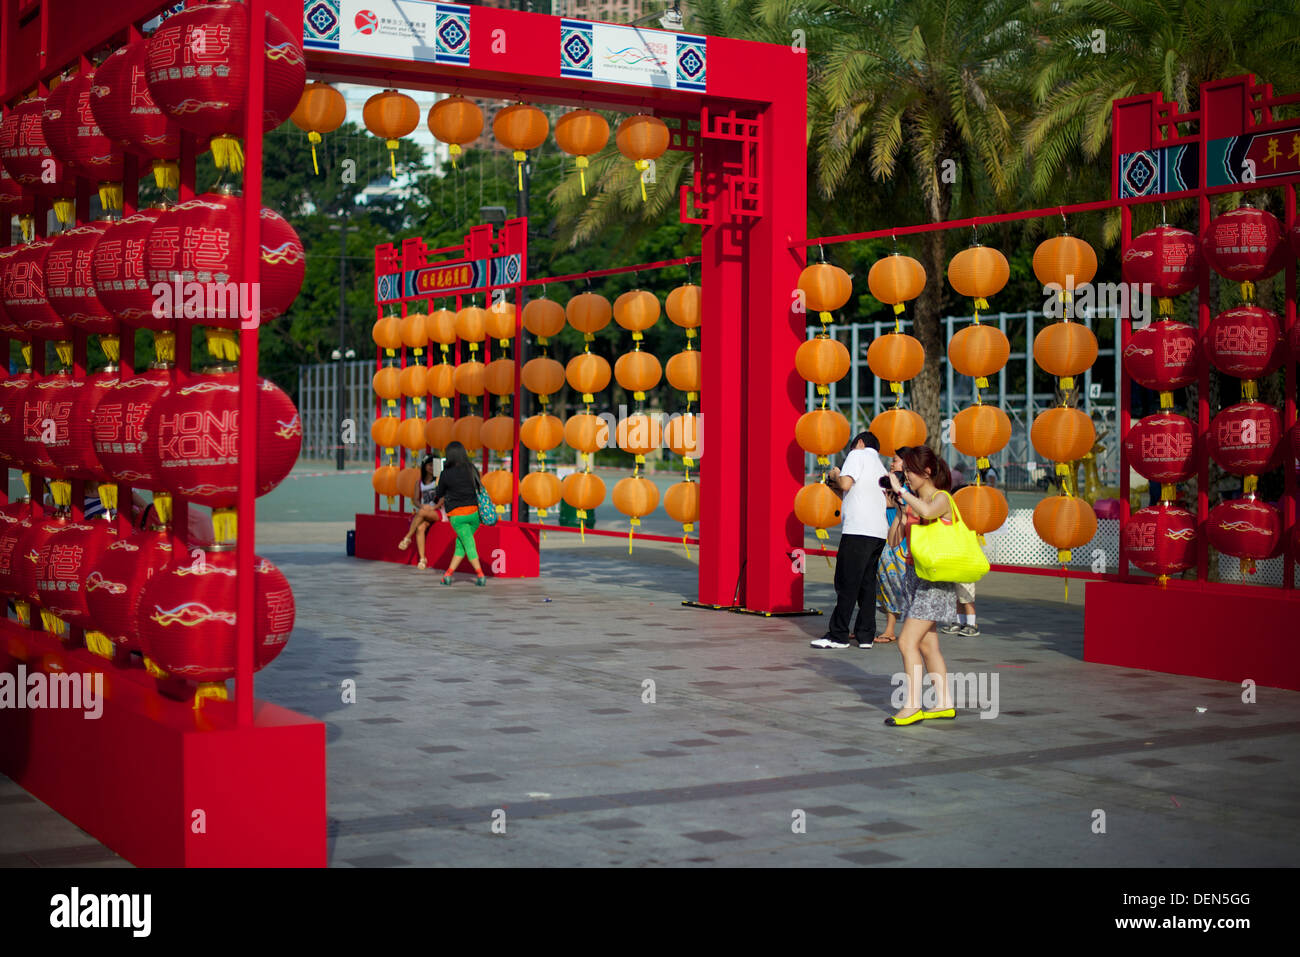 ccacd0e44 Mid-autumn festival decorations in Victoria Park, Causeway Bay Stock ...